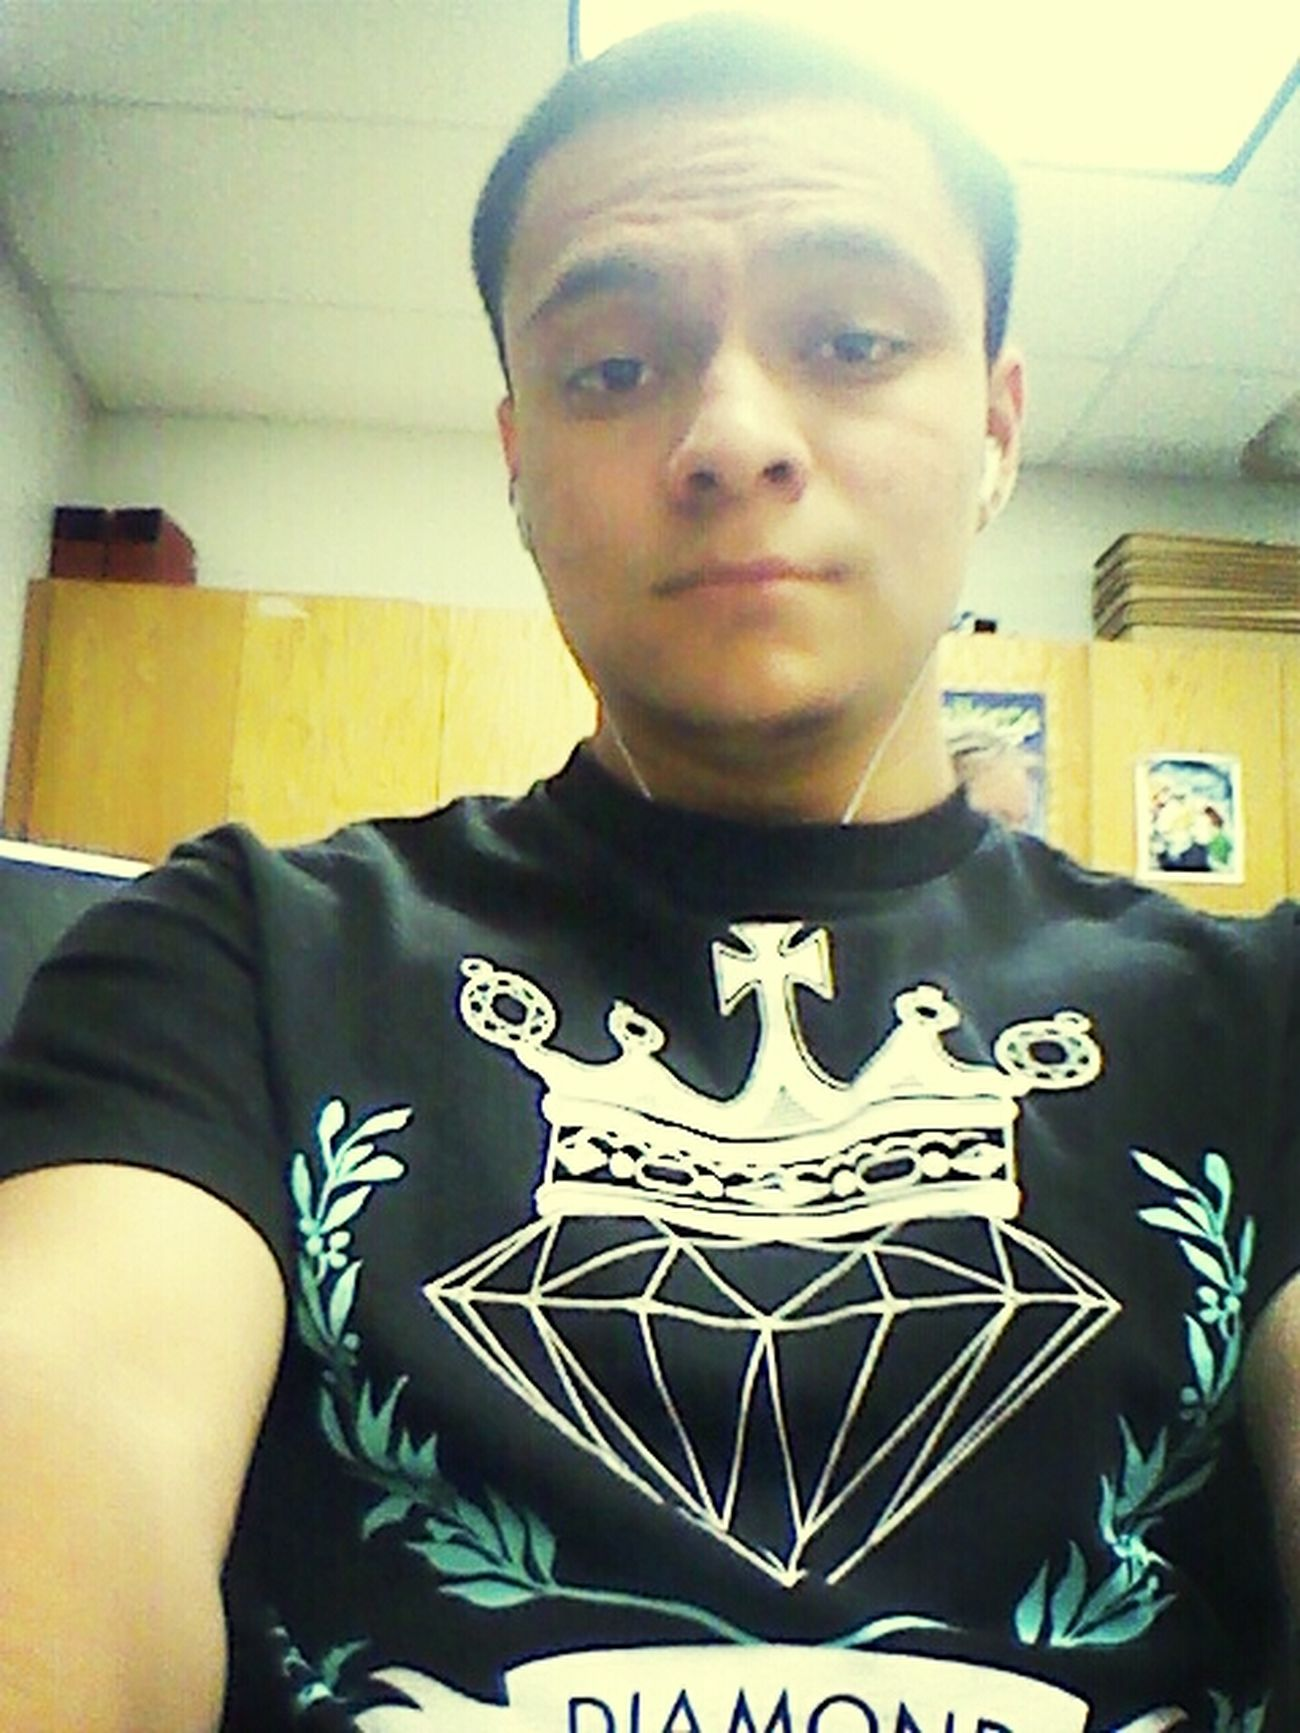 Just Chillin In Art Class, Jamming